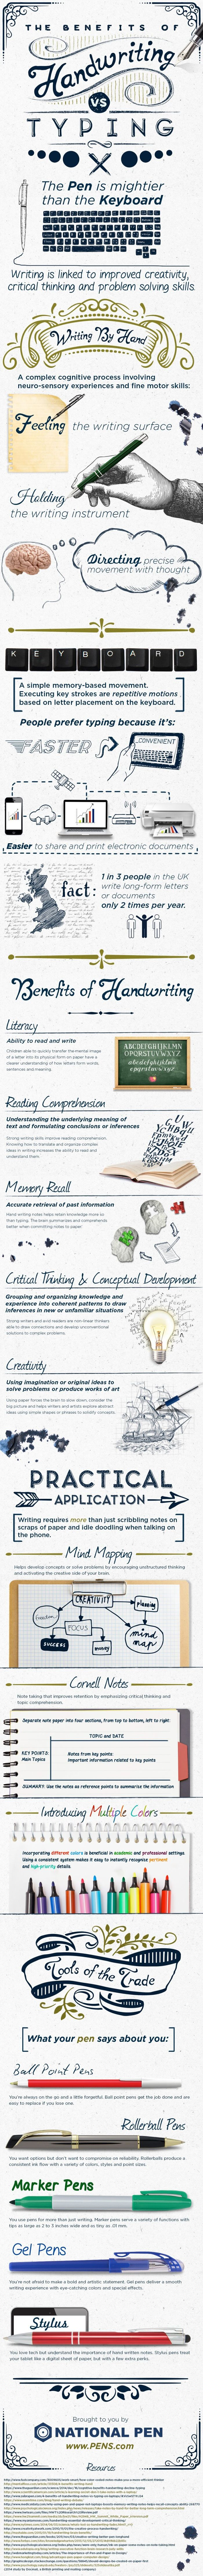 The Benefits Of Handwriting Vs. Typing